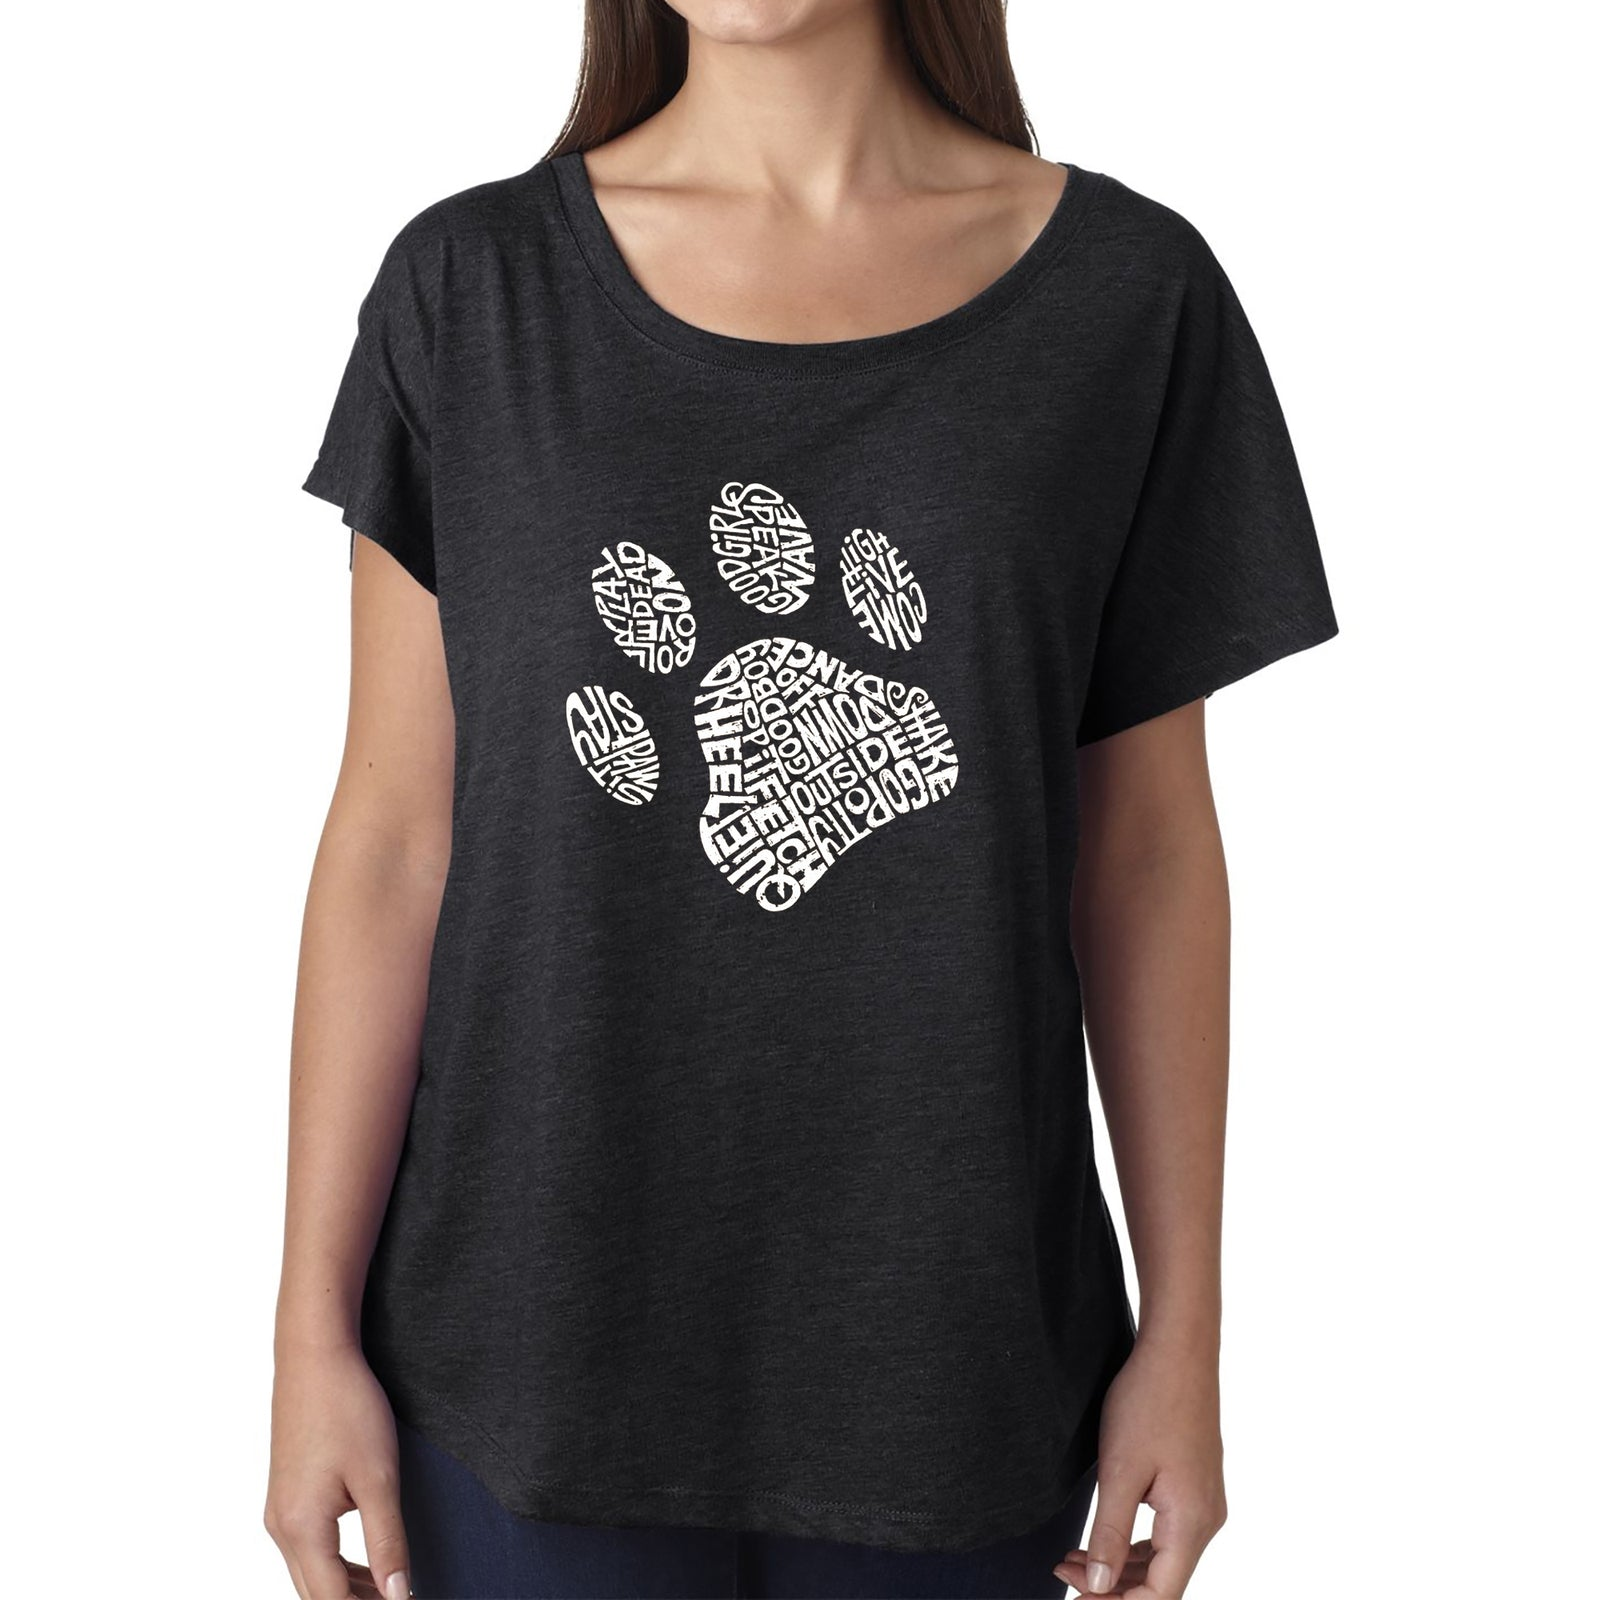 Women's Loose Fit Dolman Cut Word Art Shirt - Dog Paw